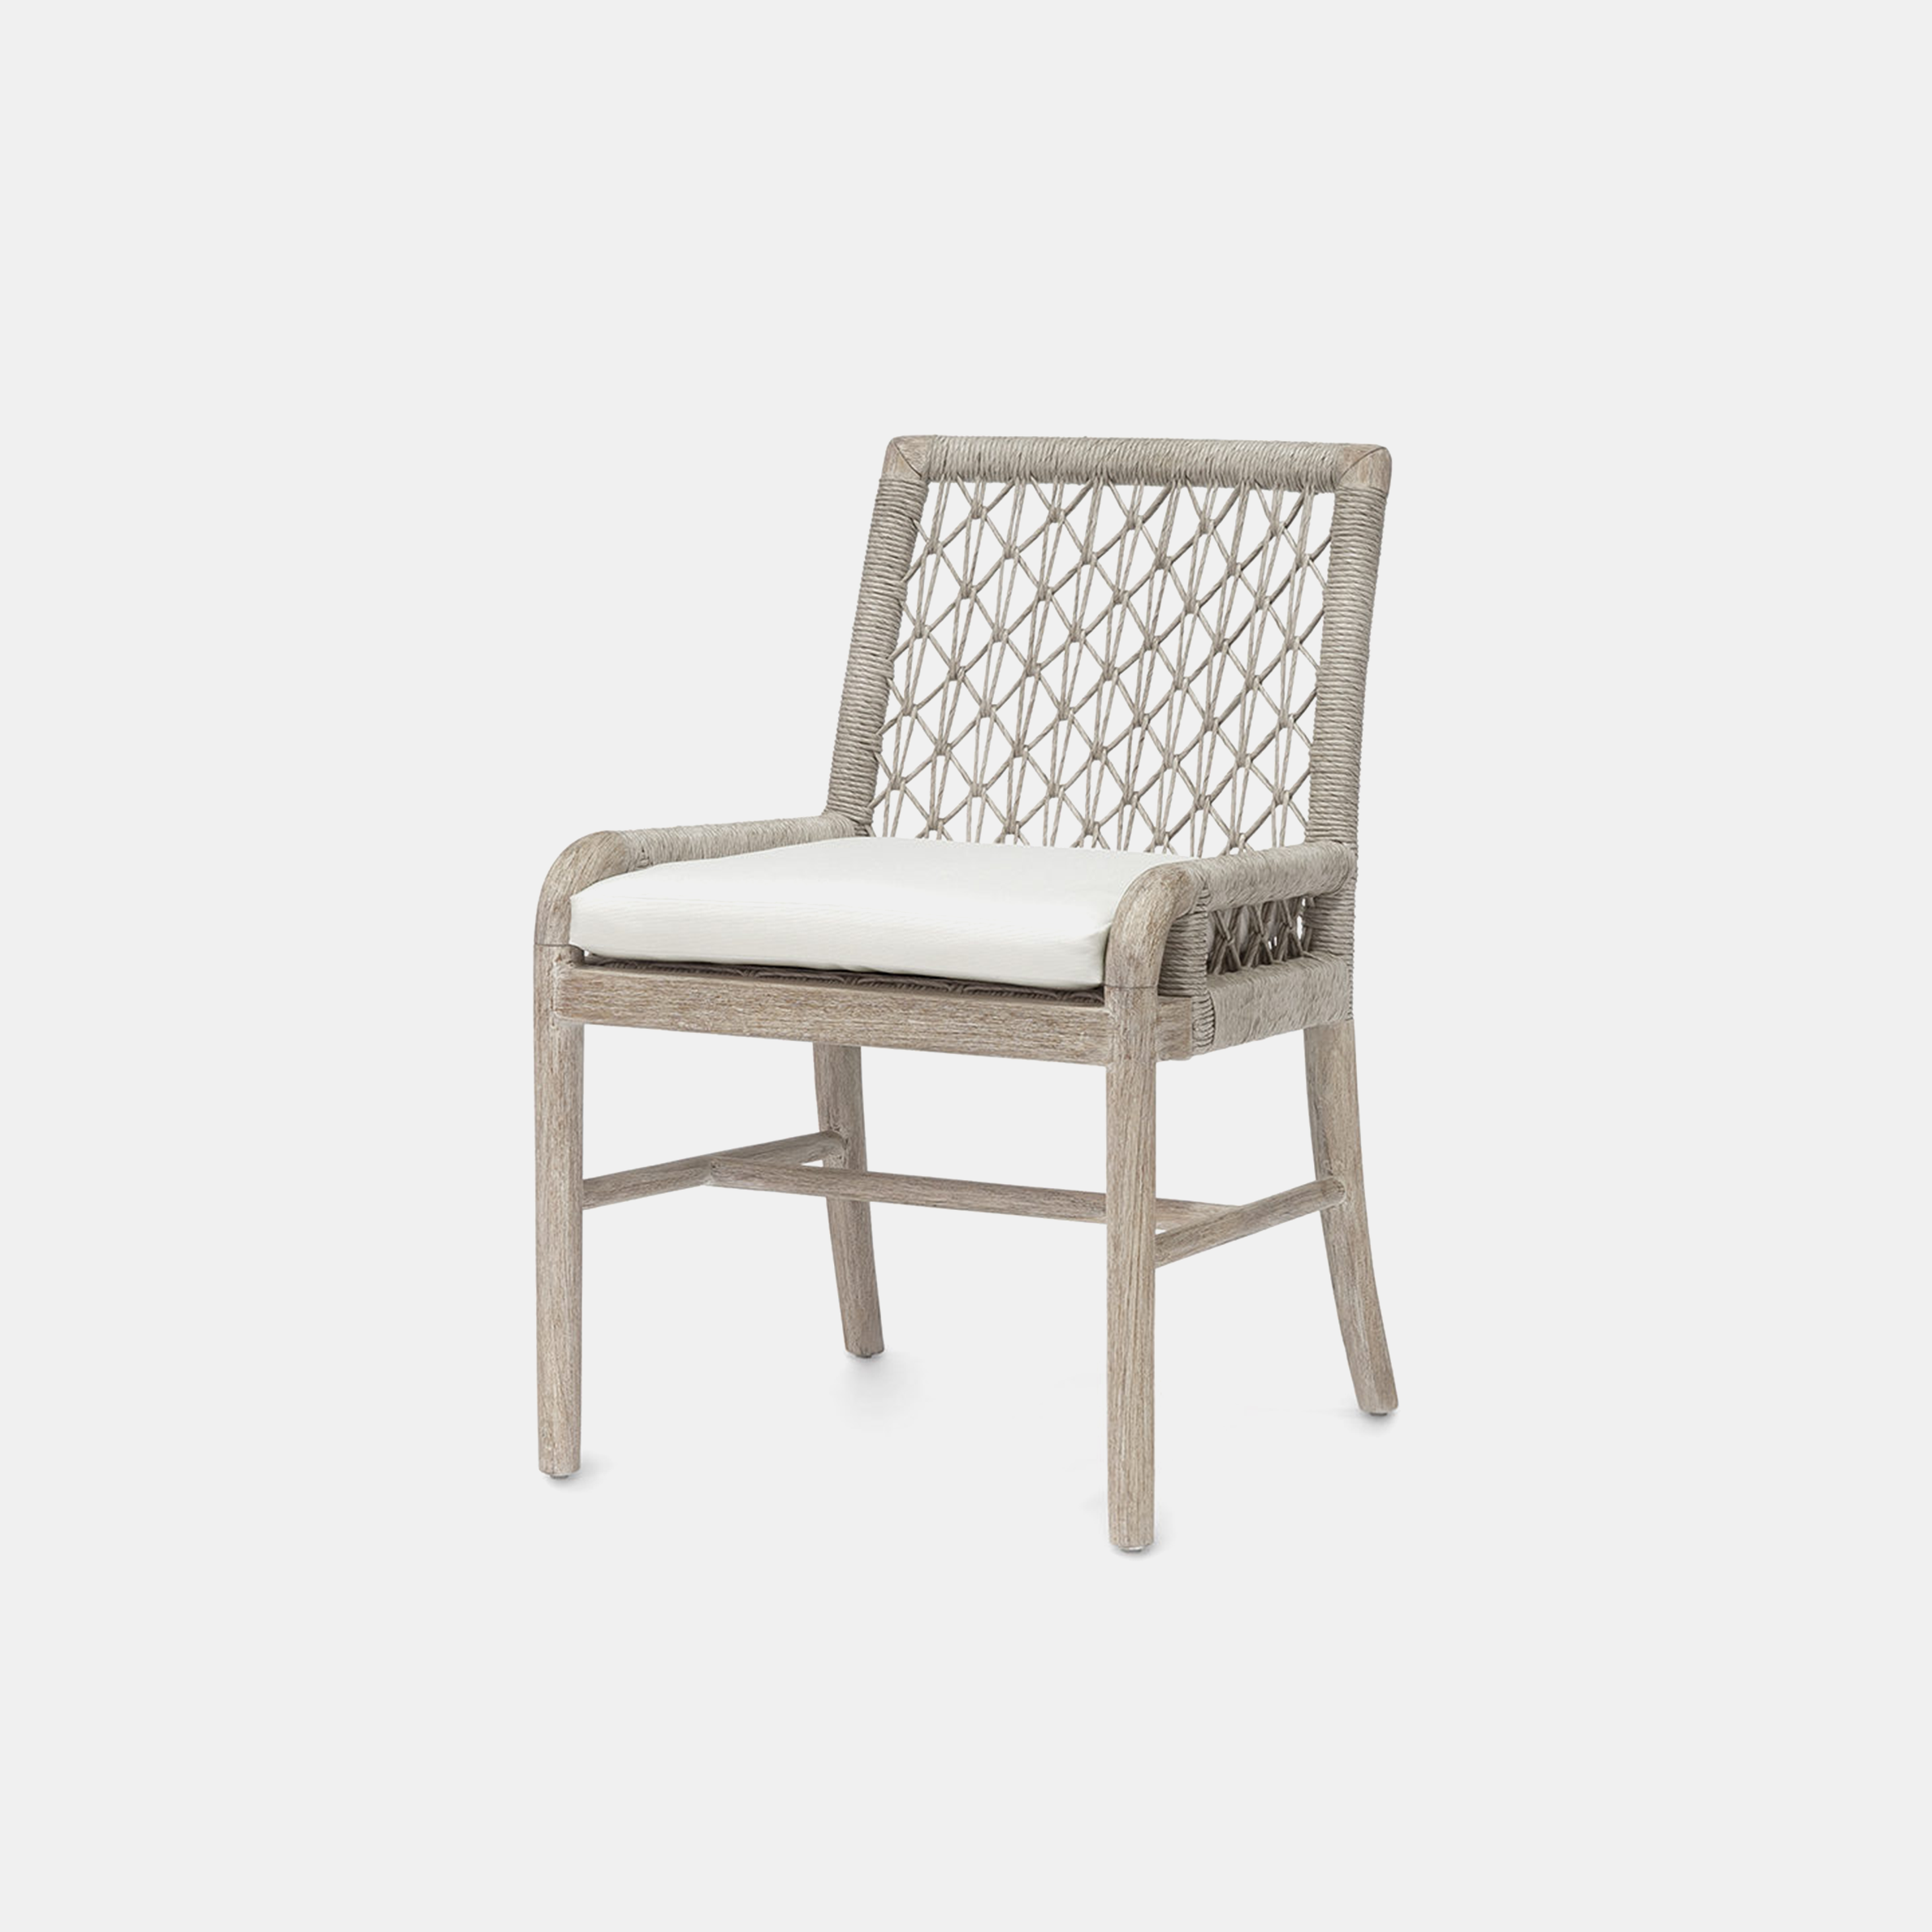 "Montecito Side Chair  21.75""w x 24""d x 33.25""h Also available as lounge chair, arm chair, sofa, counter stool, and bar stool. SKU3129PLK"